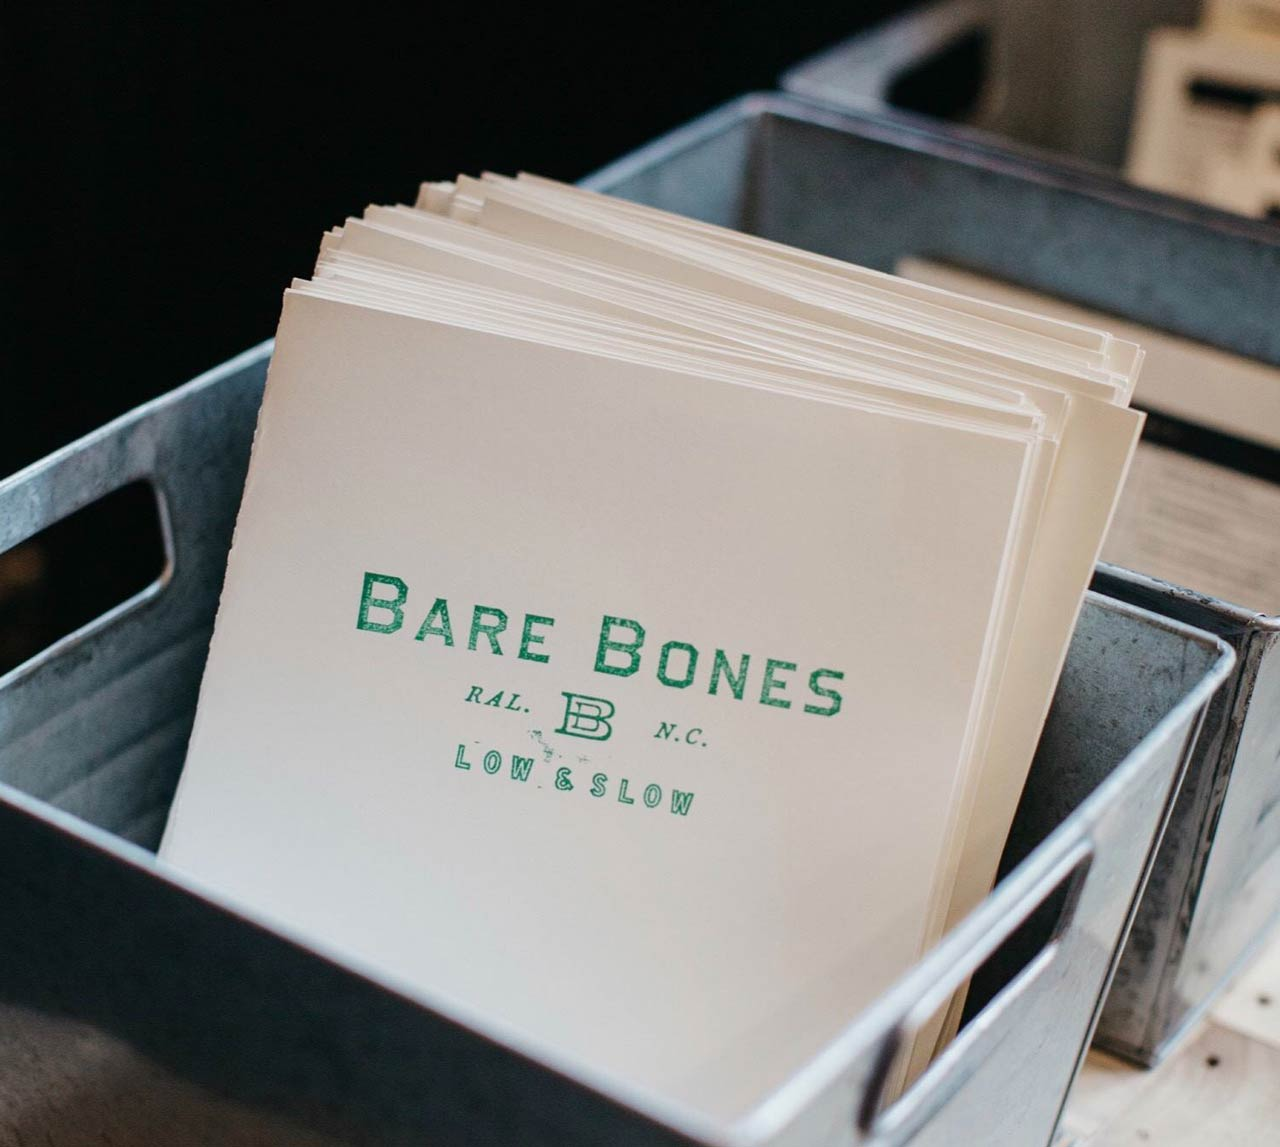 Restaurant Menu print design • Bare Bones Raleigh NC